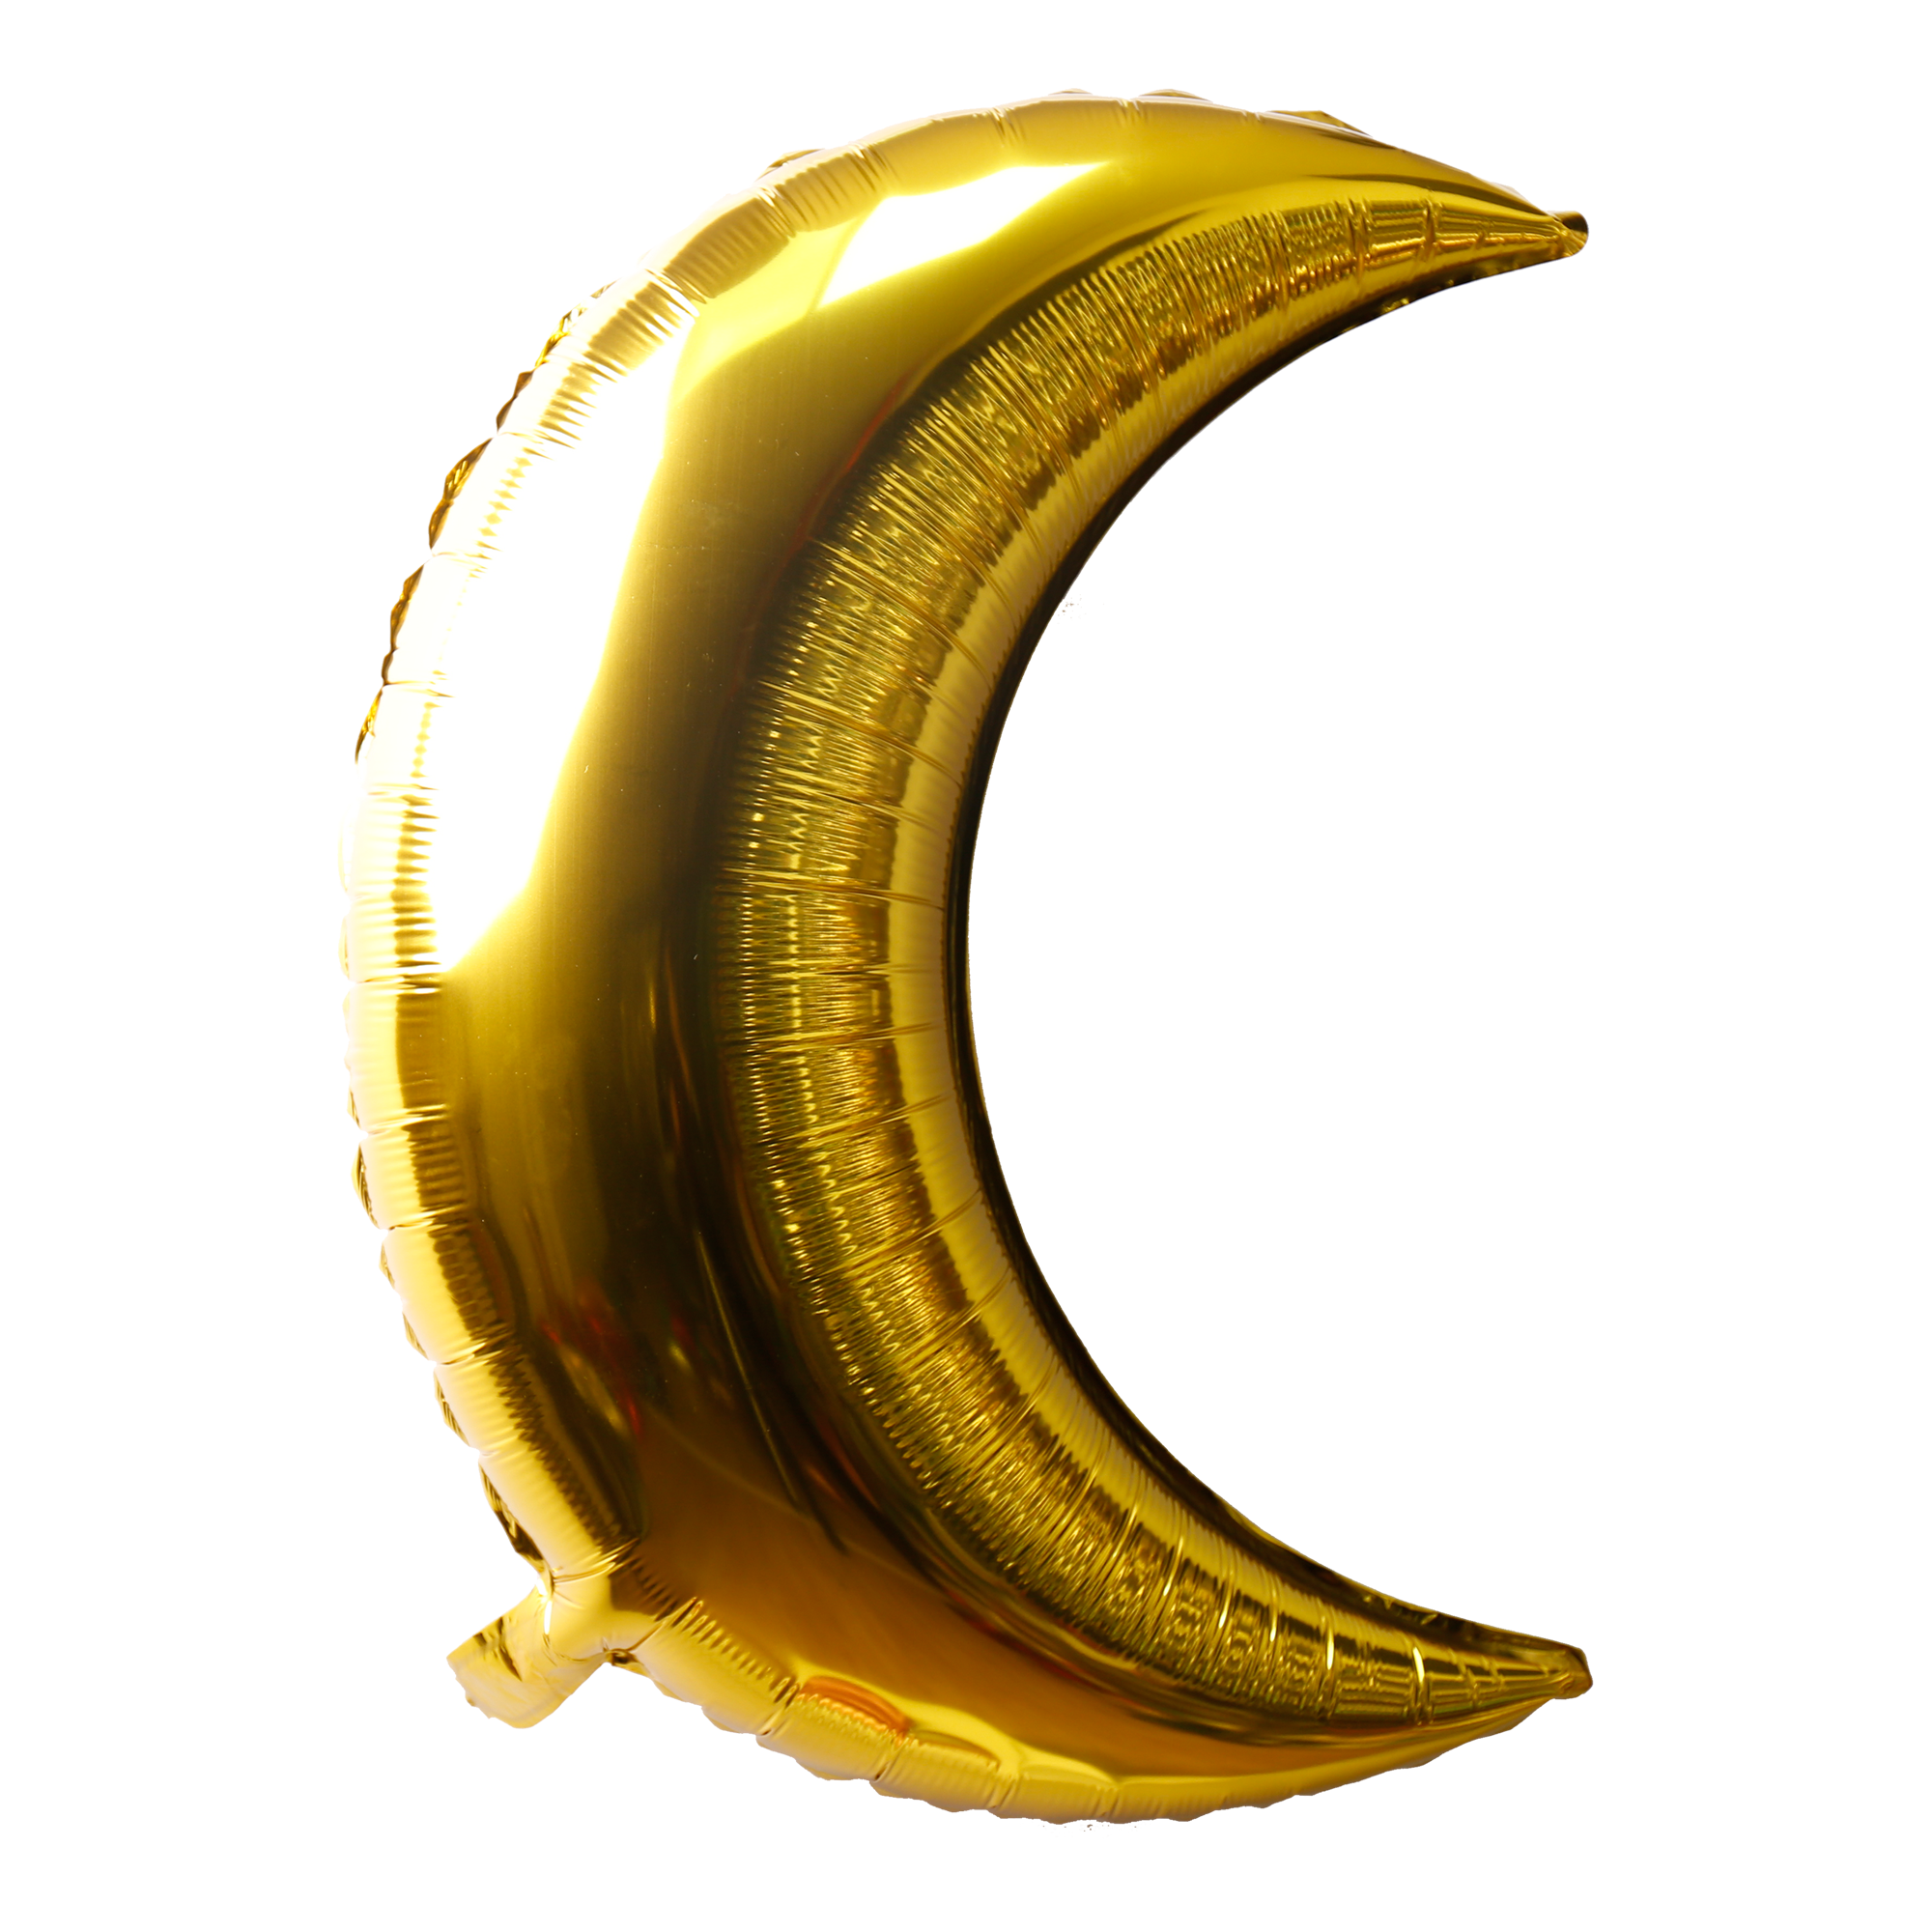 golden crescent moon shaped foil balloon for sale online in Dubai